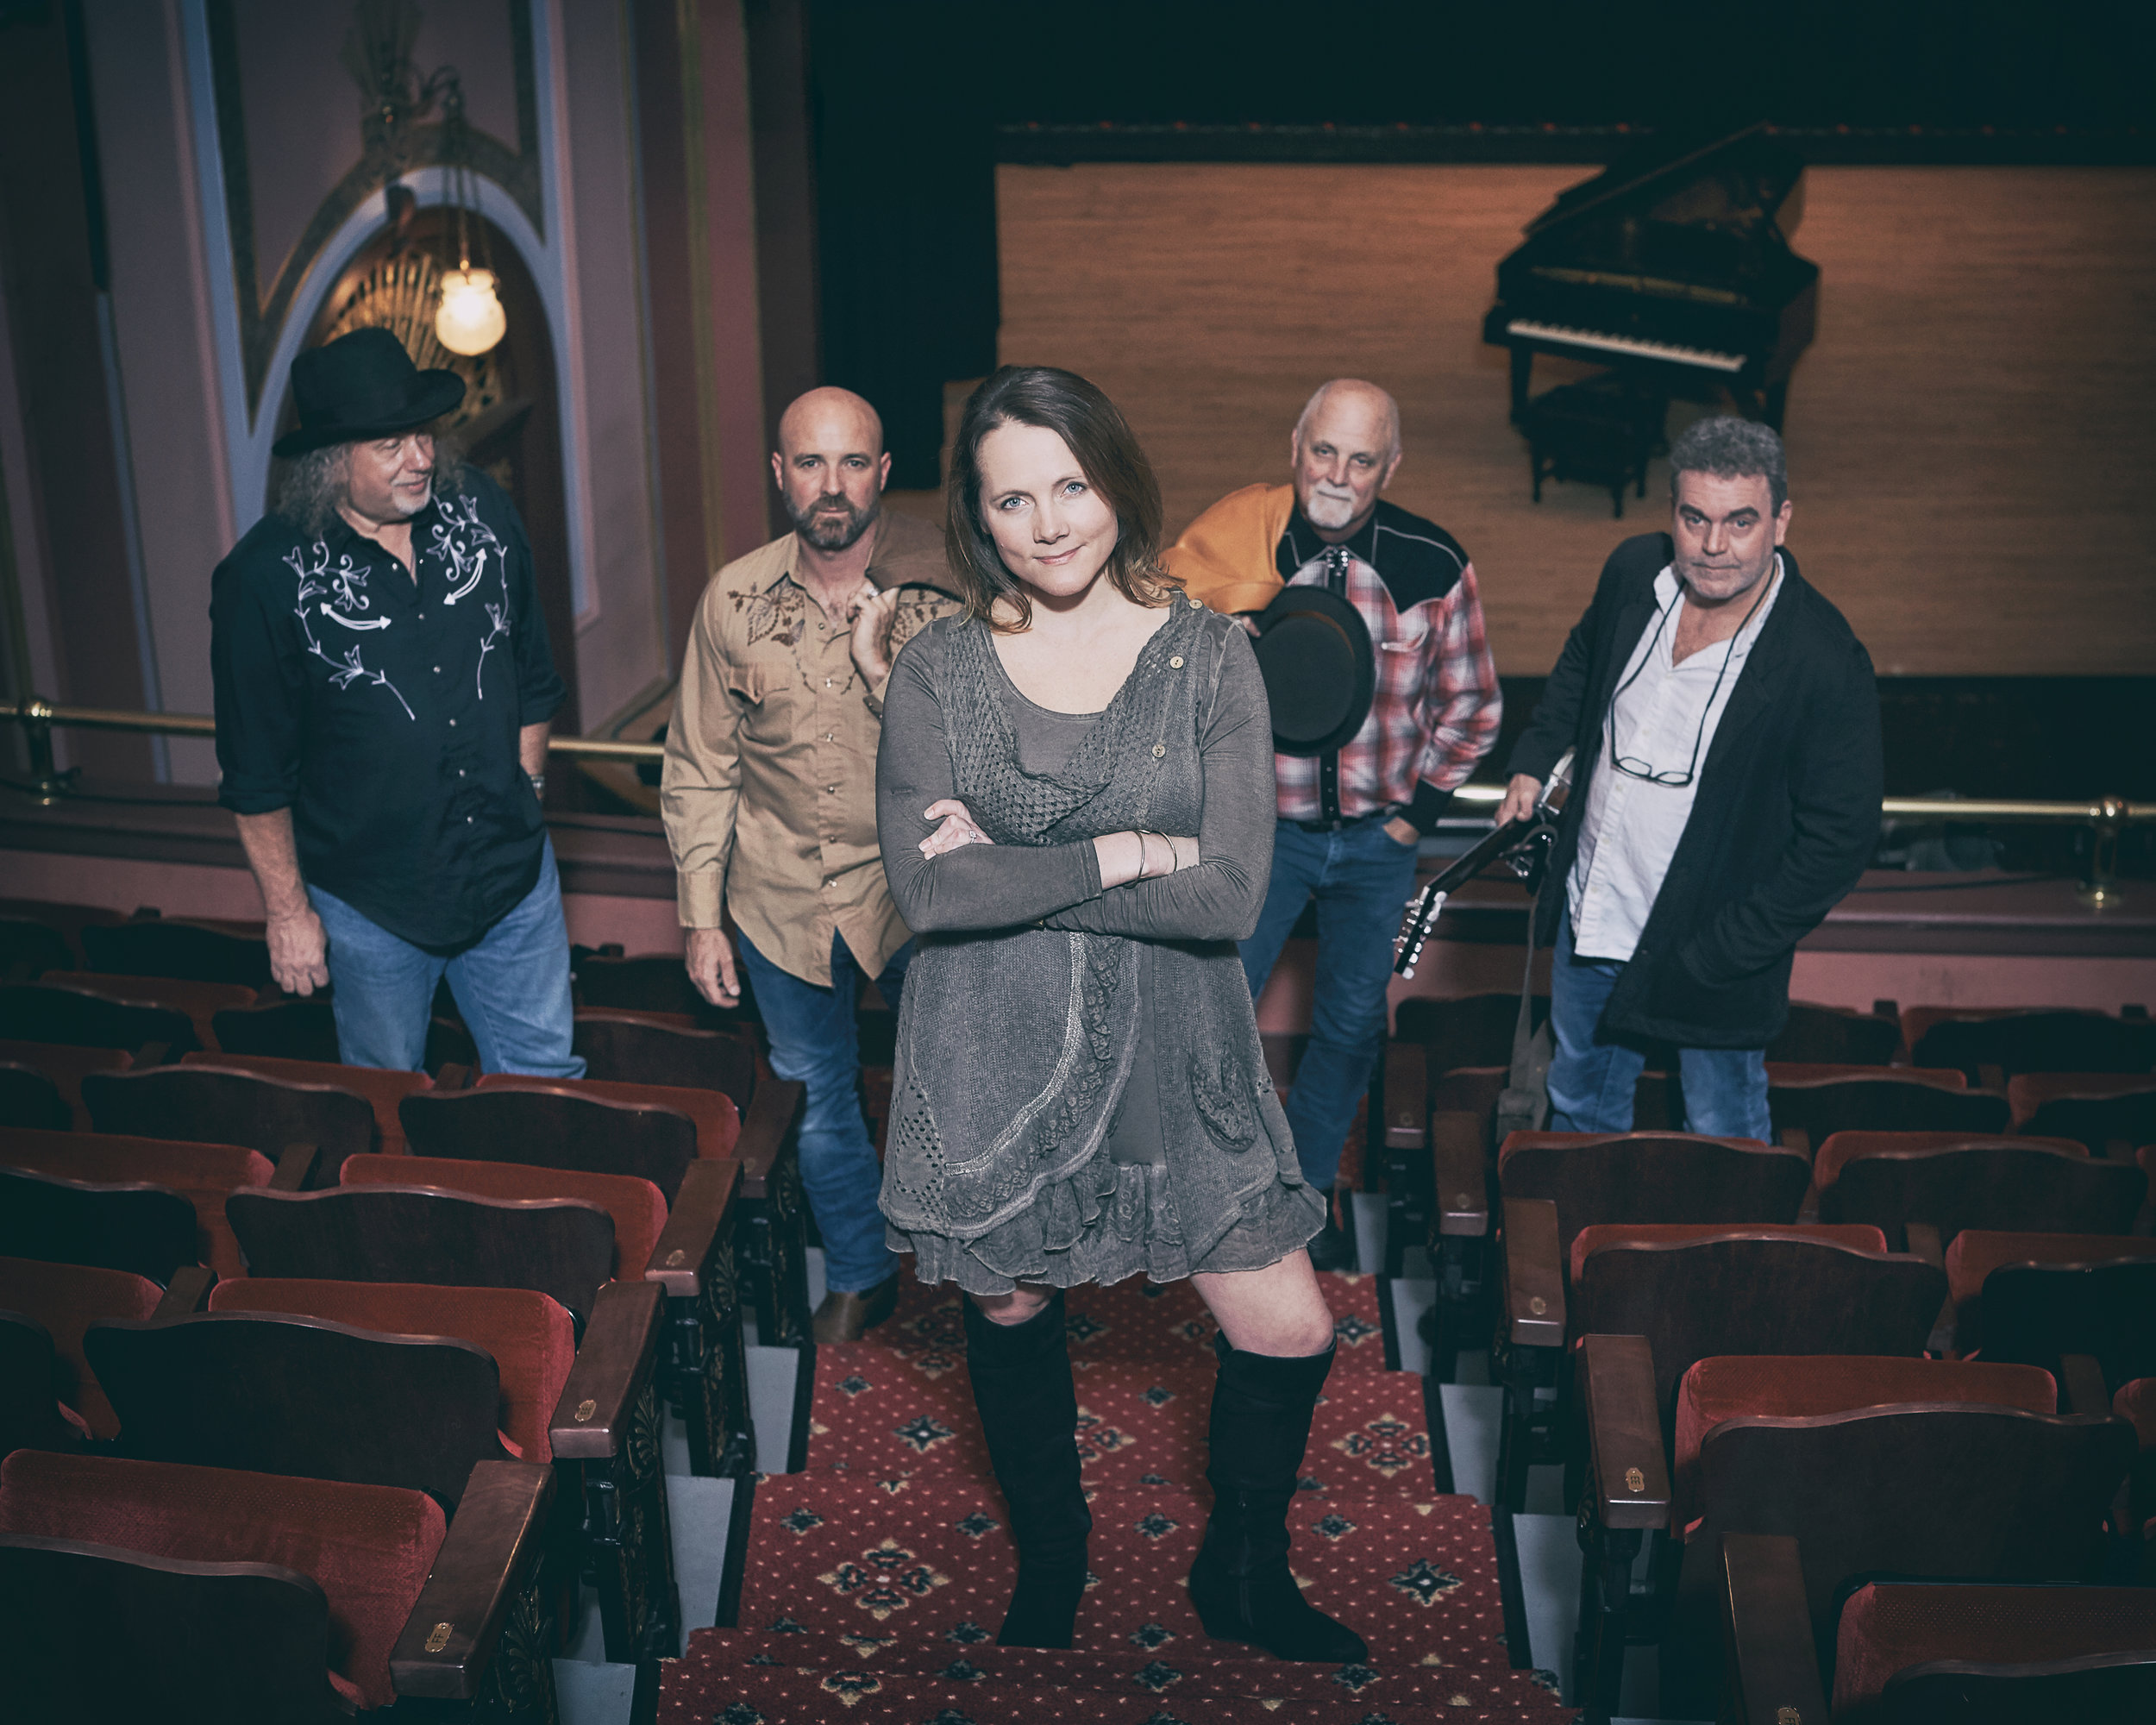 A mist of fog in the holler or a work boot stomping through the barn floor, Six Miles to Nellie brings honest intensity and ethereal melodies to its brand of original Americana music and a range of covers shaped by decades of the music of the people.